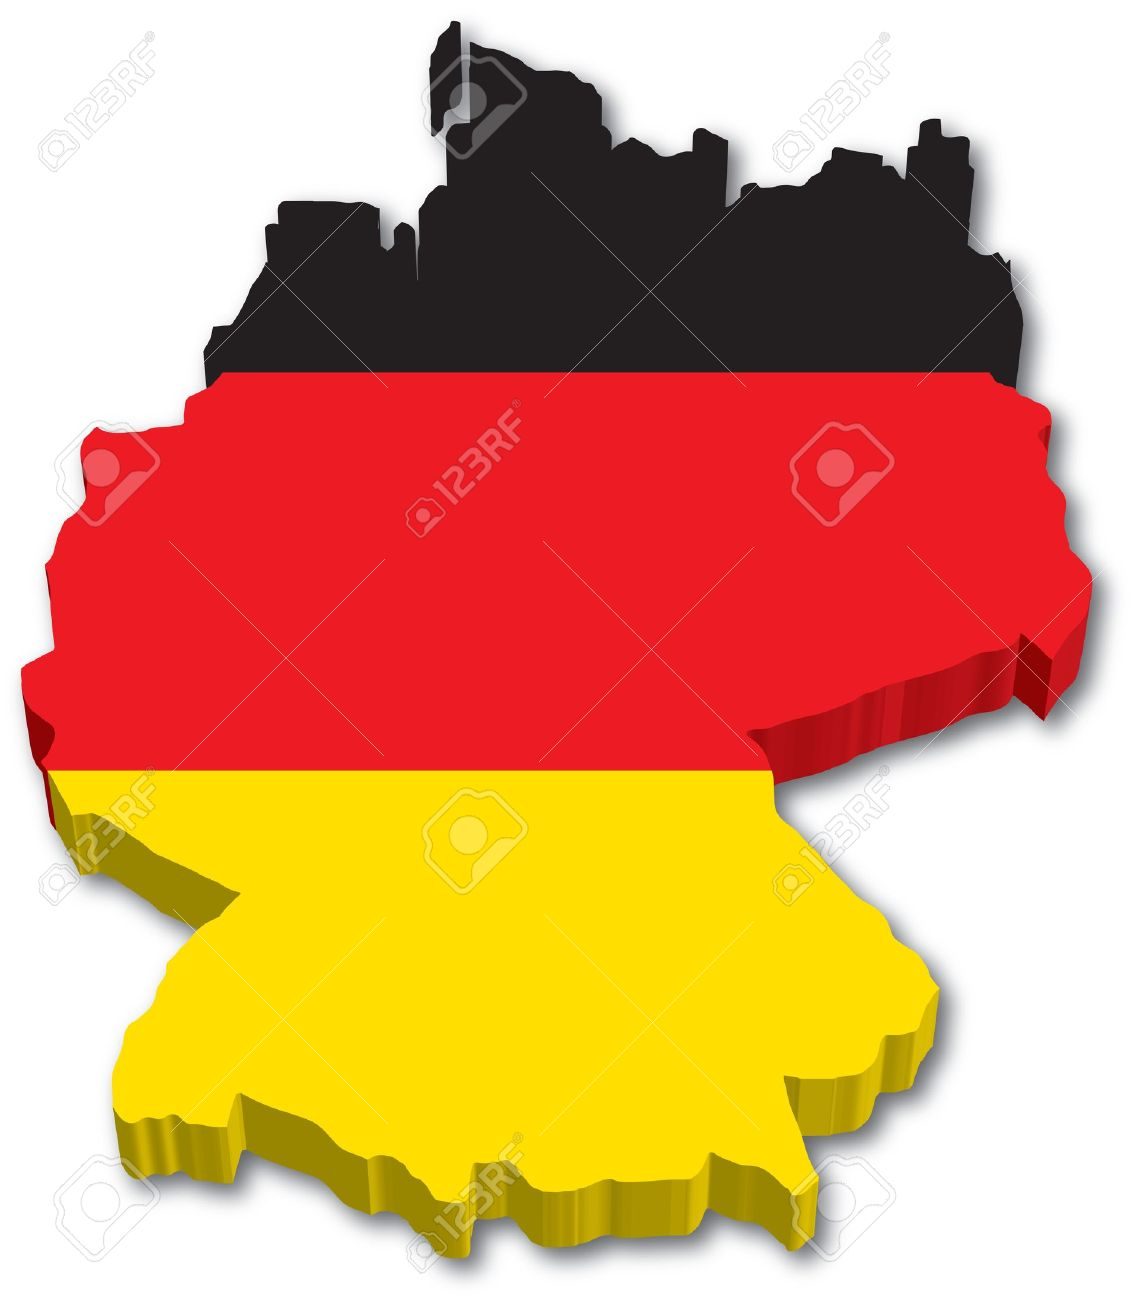 Germany clipart #10, Download drawings